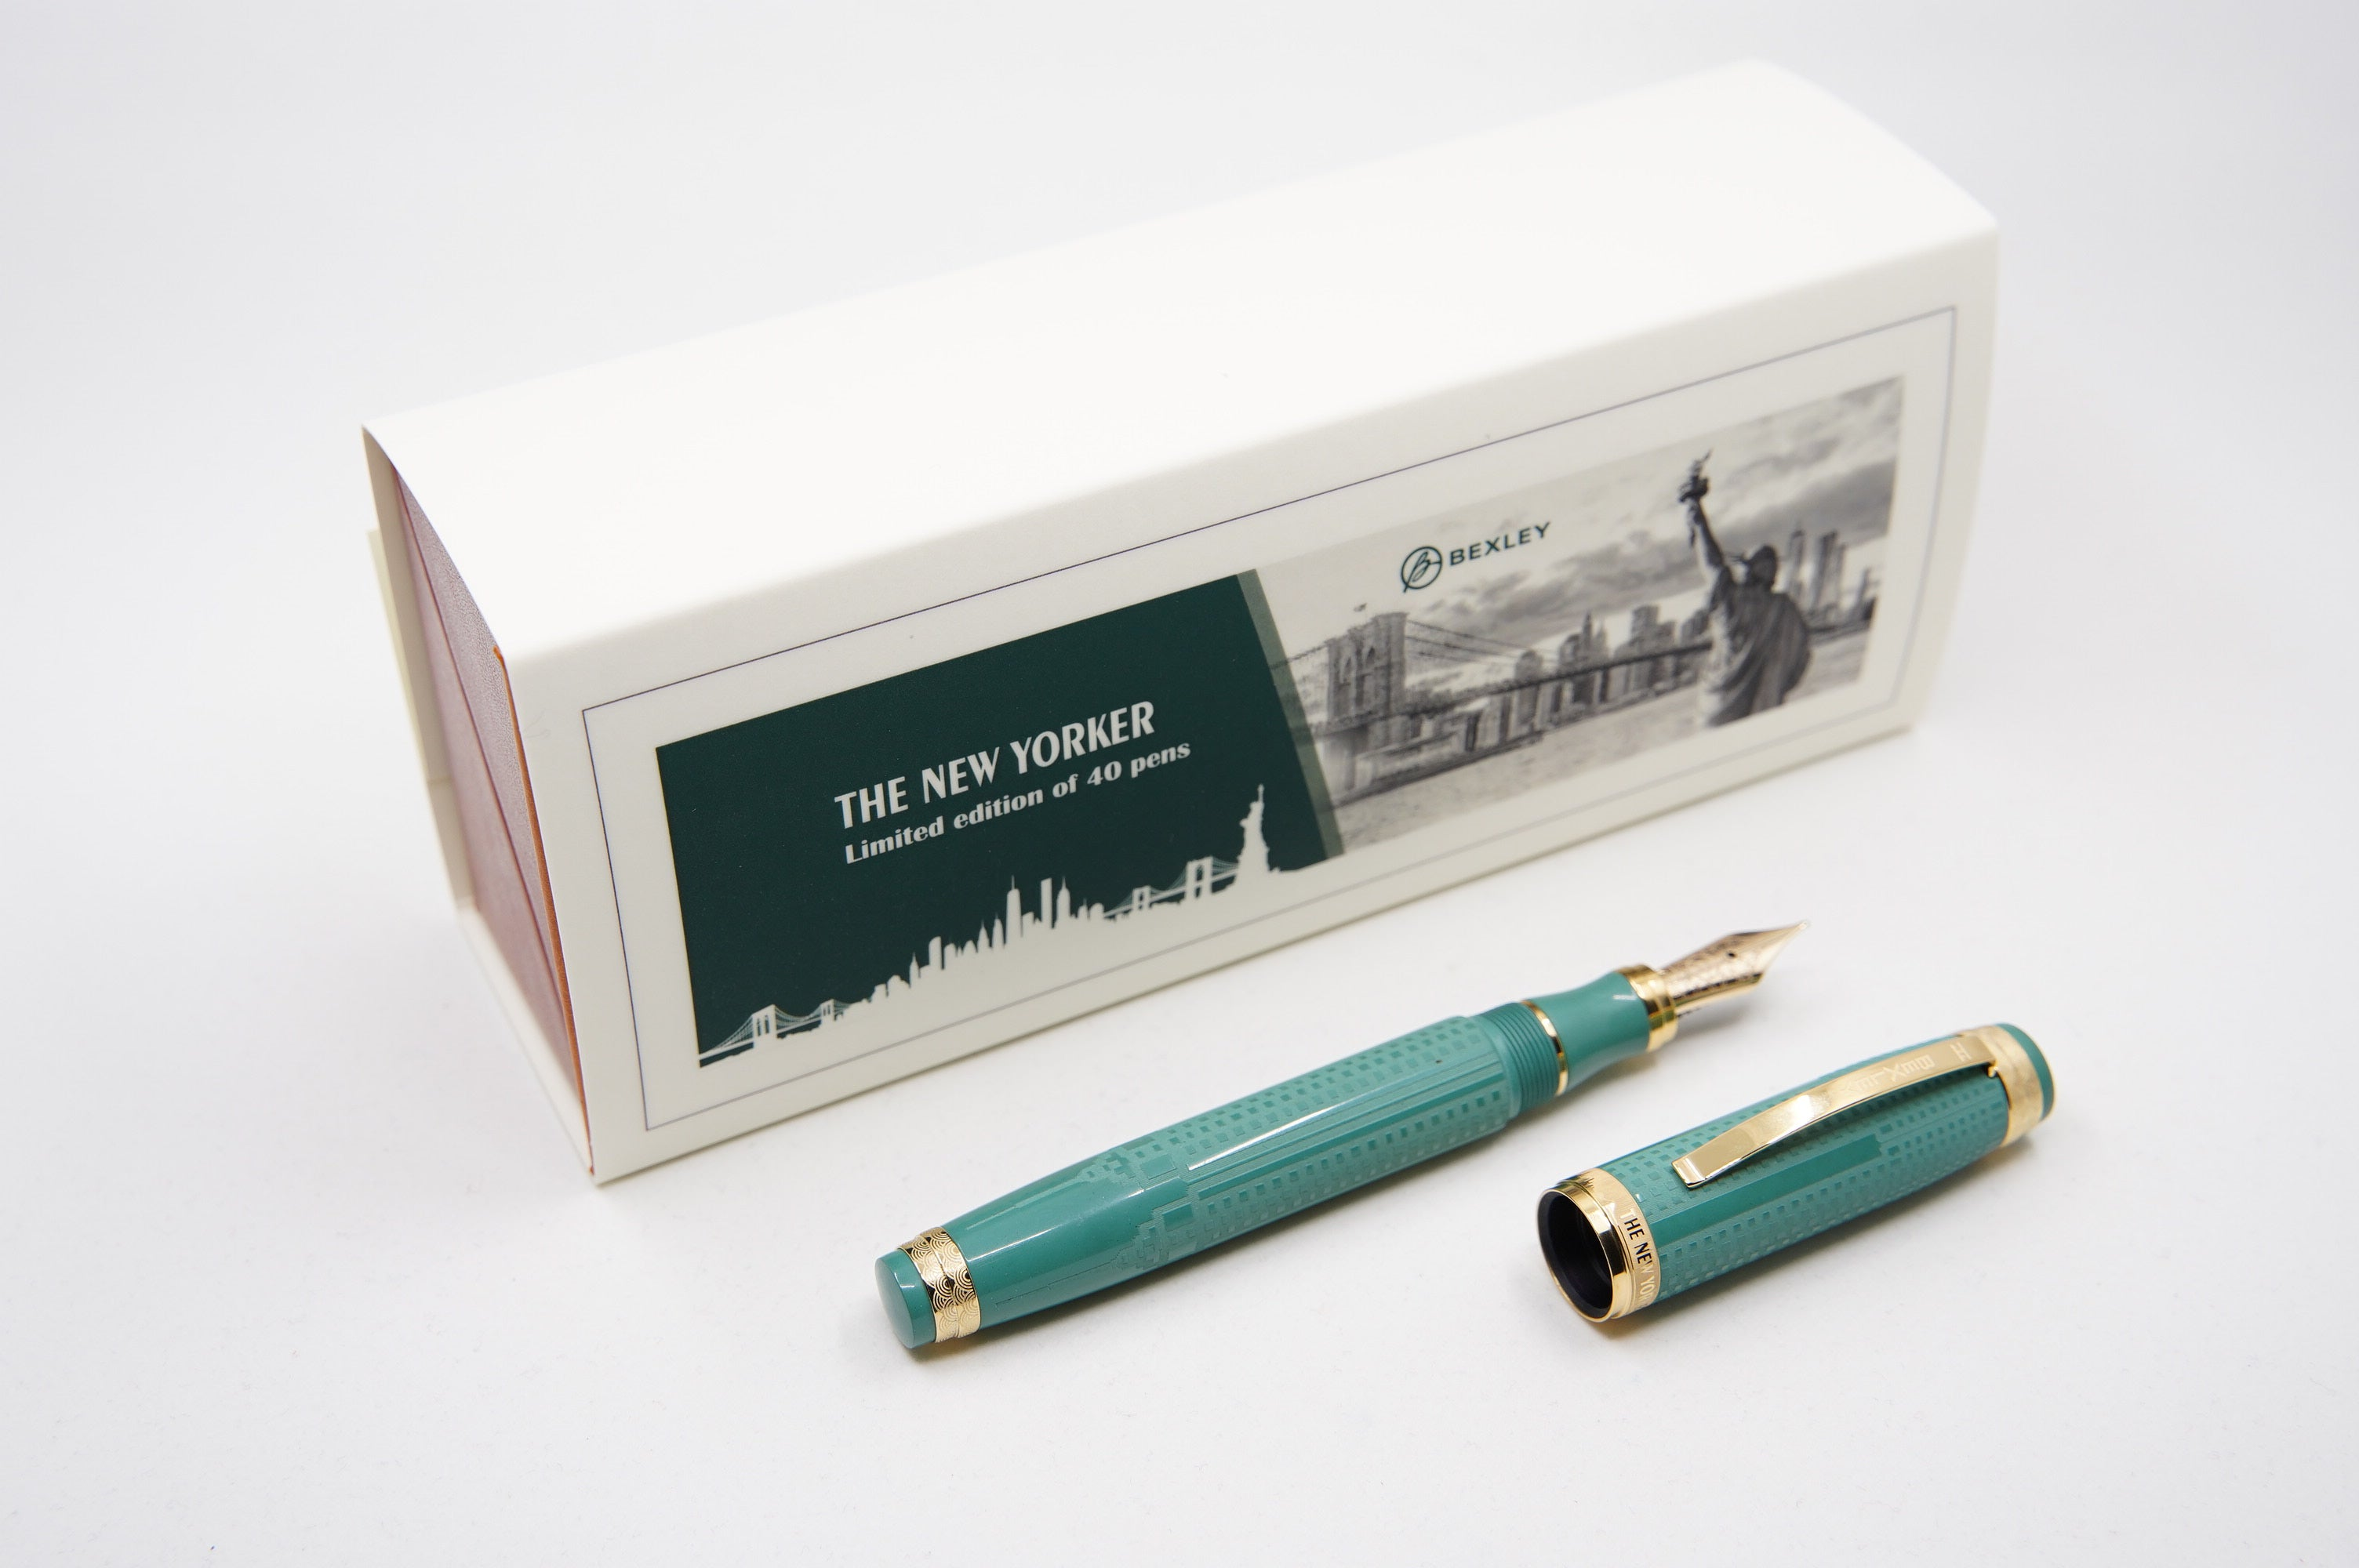 Bexley New Yorker Empire State Building Chased - Green ebonite NEW